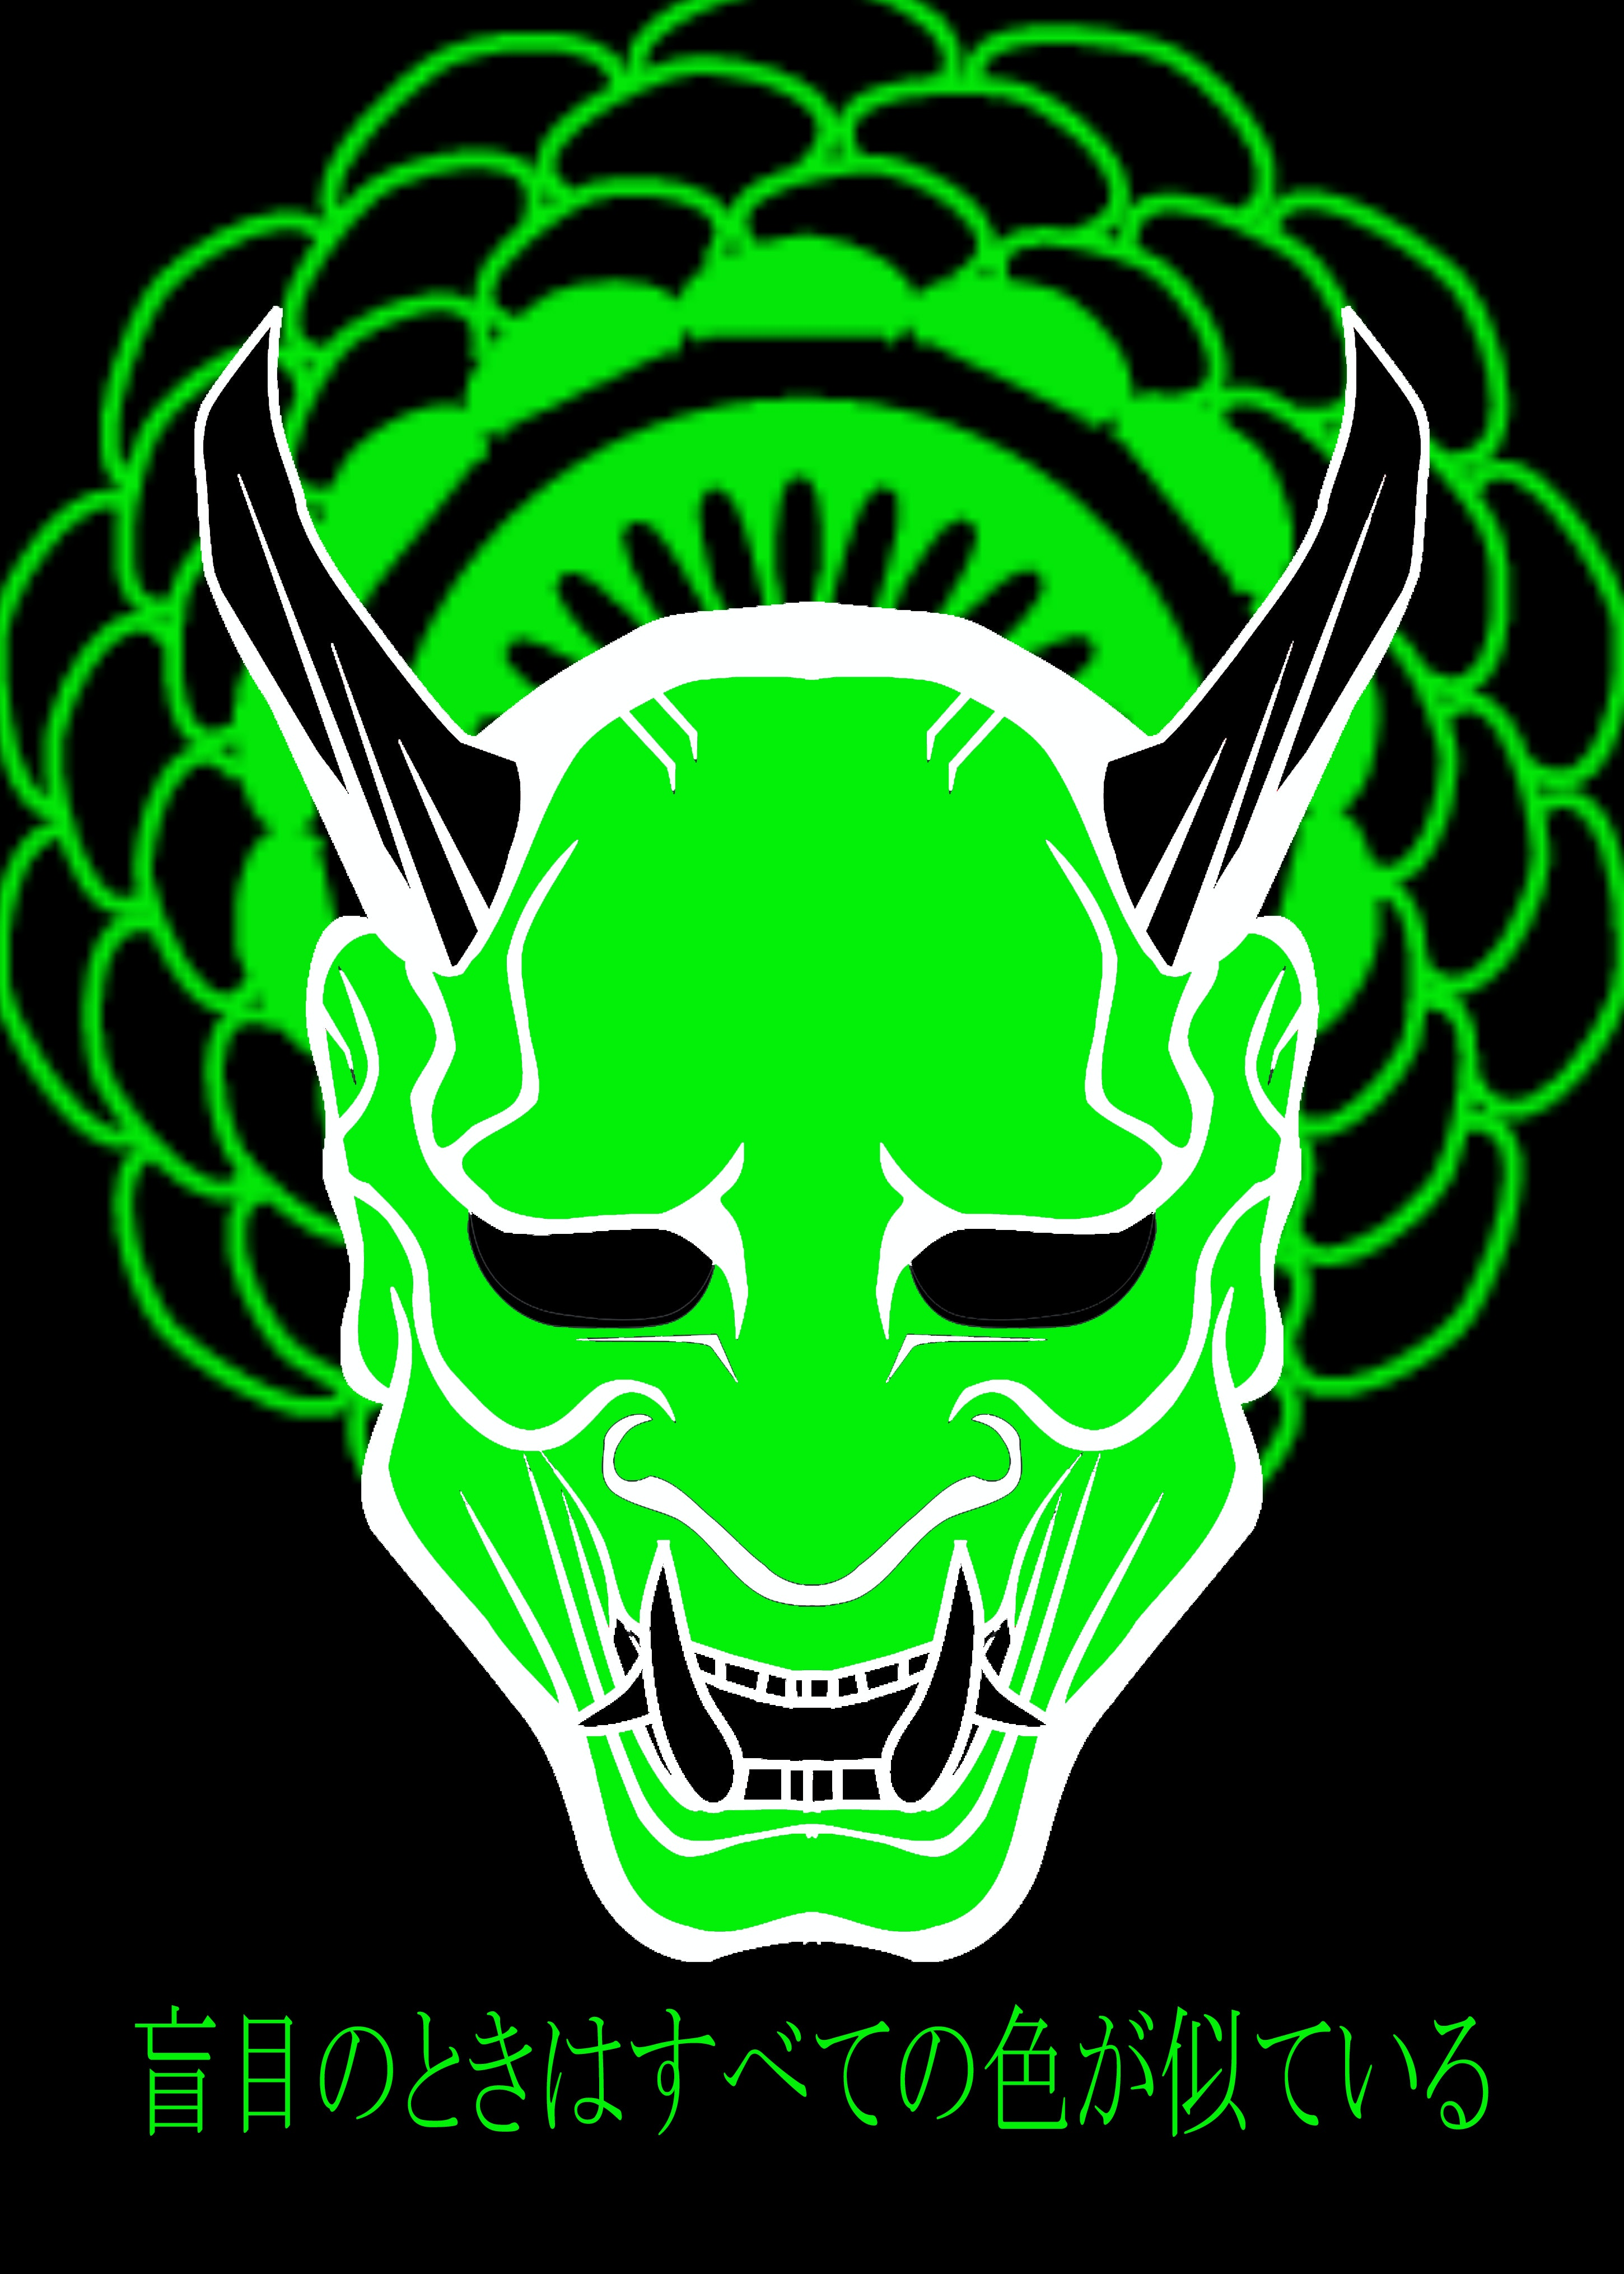 oni-mask green